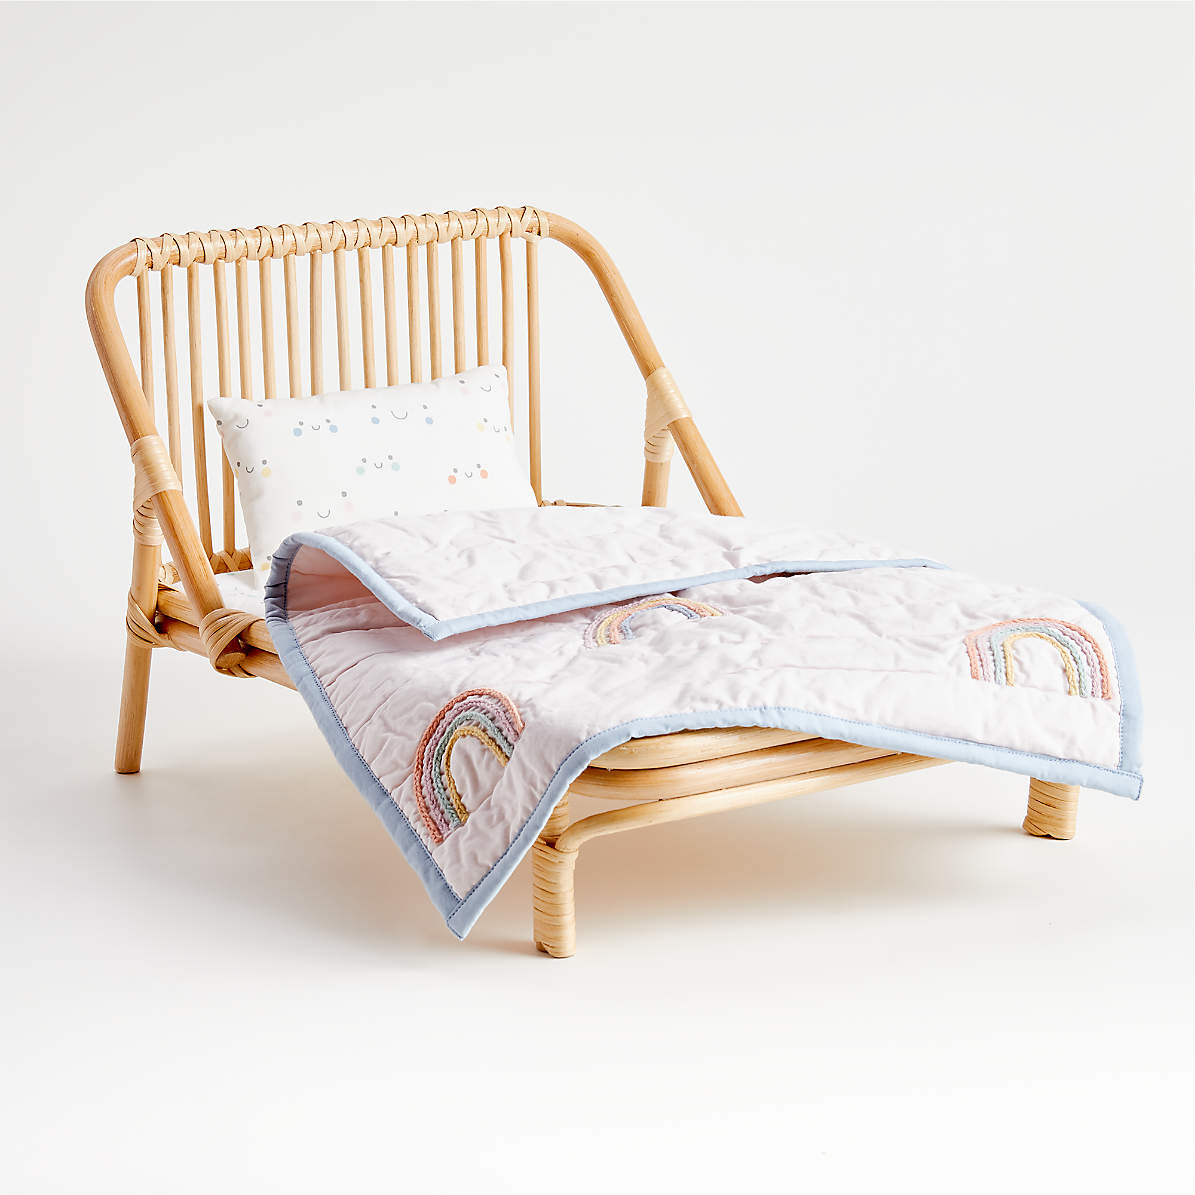 Rattan Doll Bed Crate And Barrel Canada